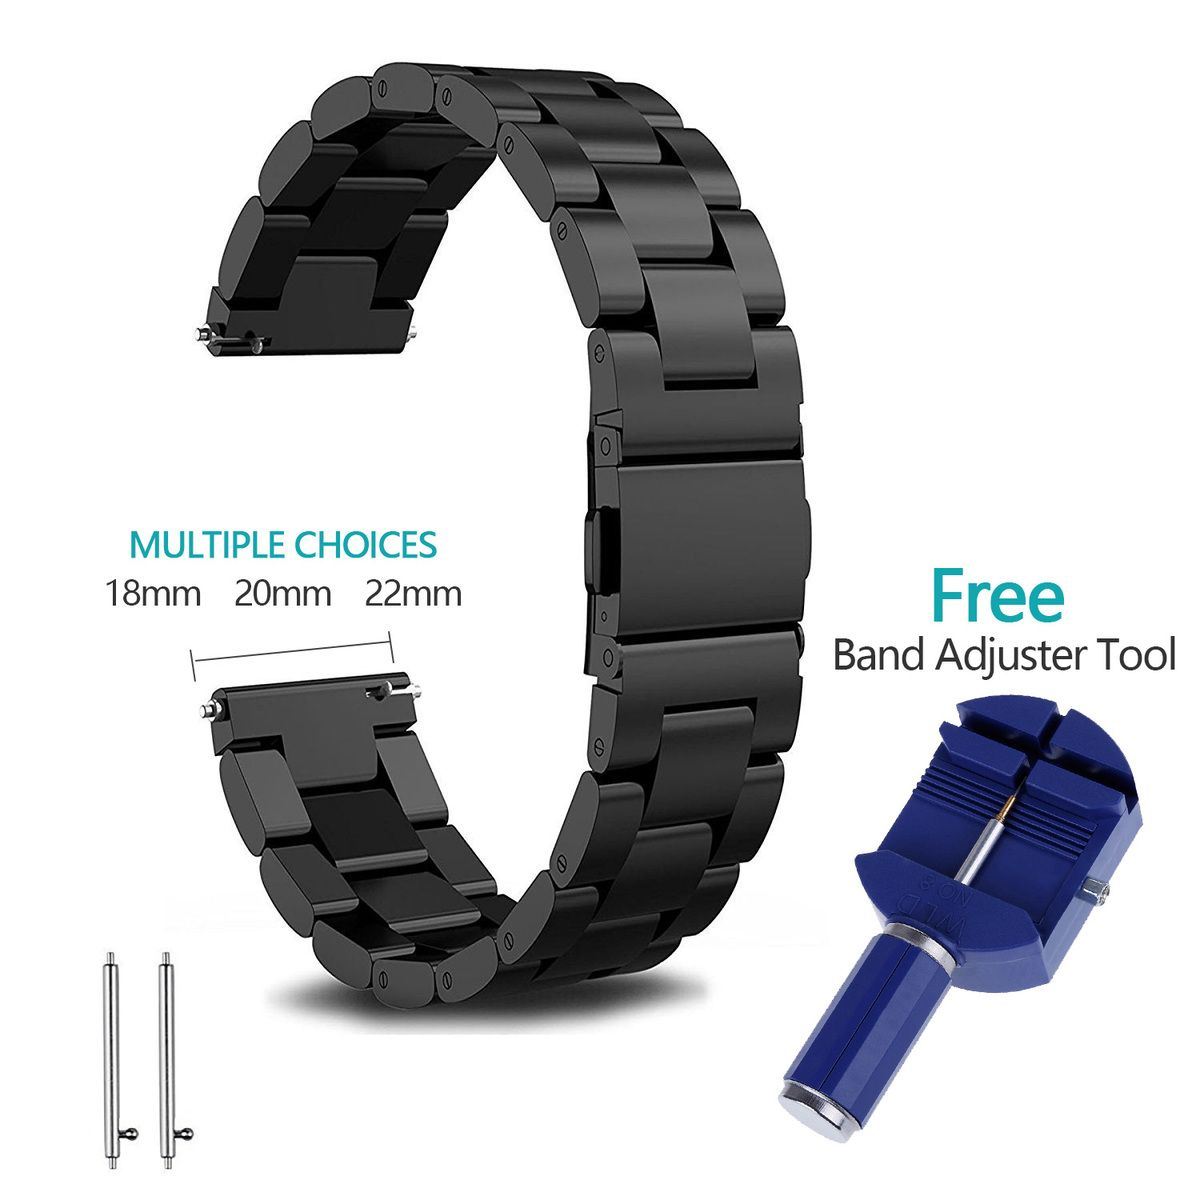 18mm 20mm 22mm Stainless Steel Watch Band Strap For Samsung Gear S2 S3 smart Watch Link bracelet black For Gear S2 Replacement